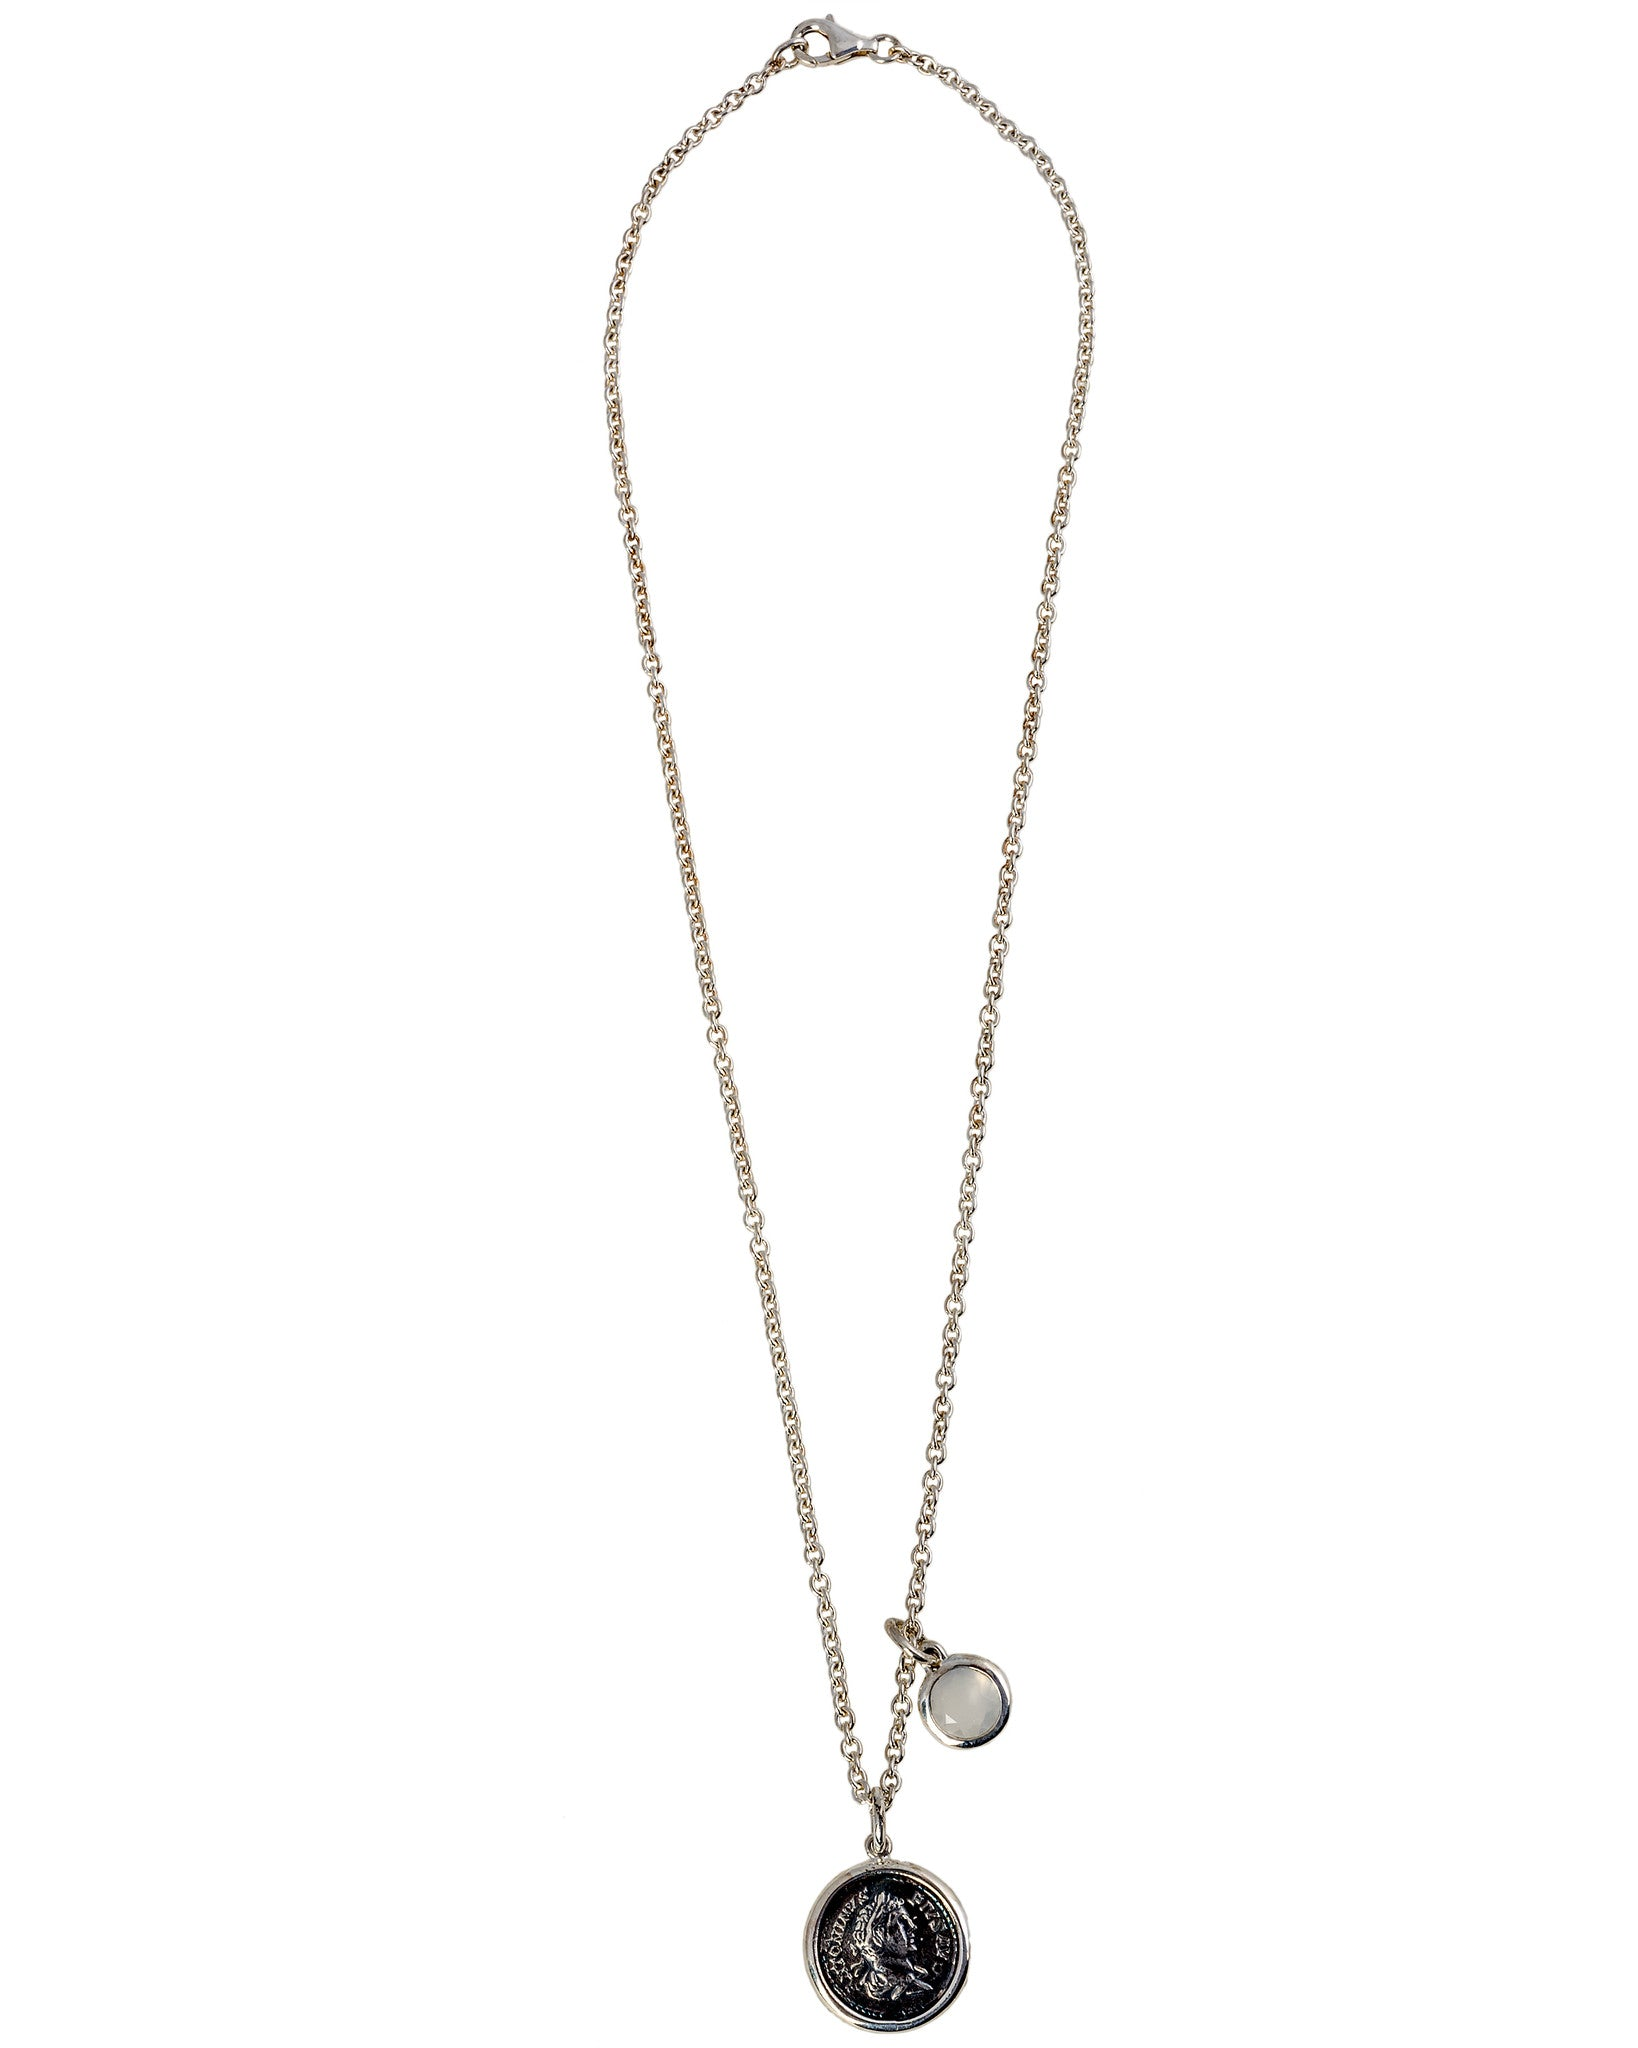 Legacy Vivace Sterling Silver Chain w/ 1 Medium Antique Pius Coin and Moonstone (1.50 ct.) Pendants - Ring Size: 5.25